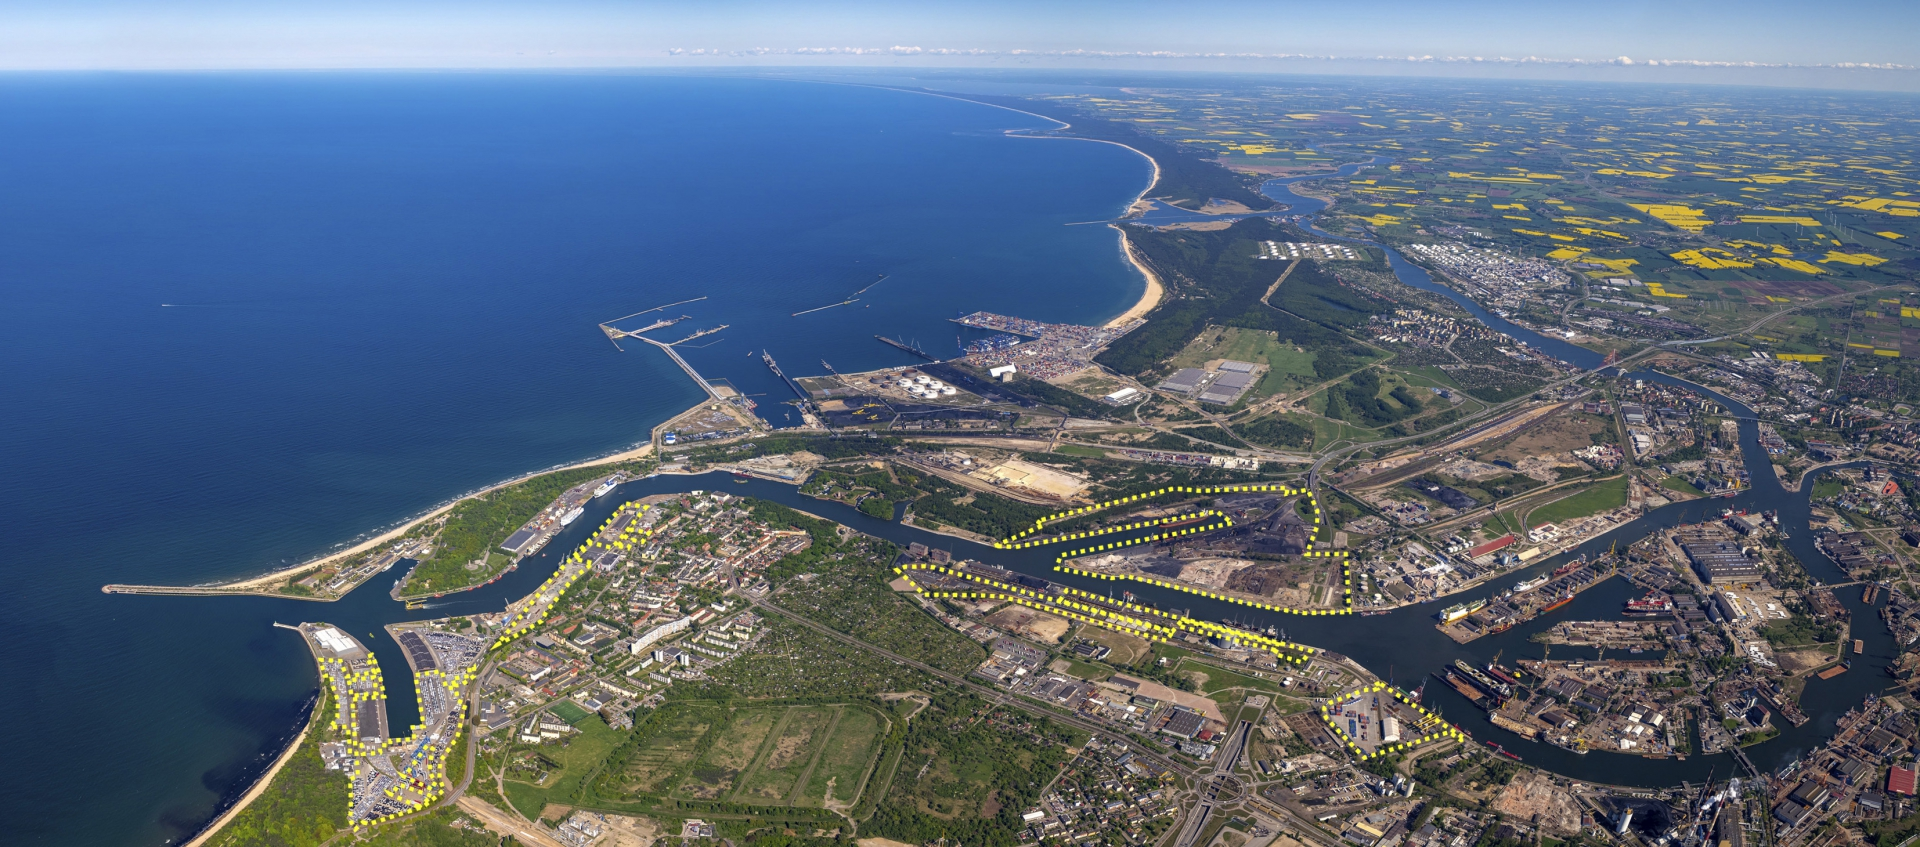 The Port of Gdansk summarized the year 2020. Despite the crisis, it handled 48 million tons, and the investment pace is not slowing down